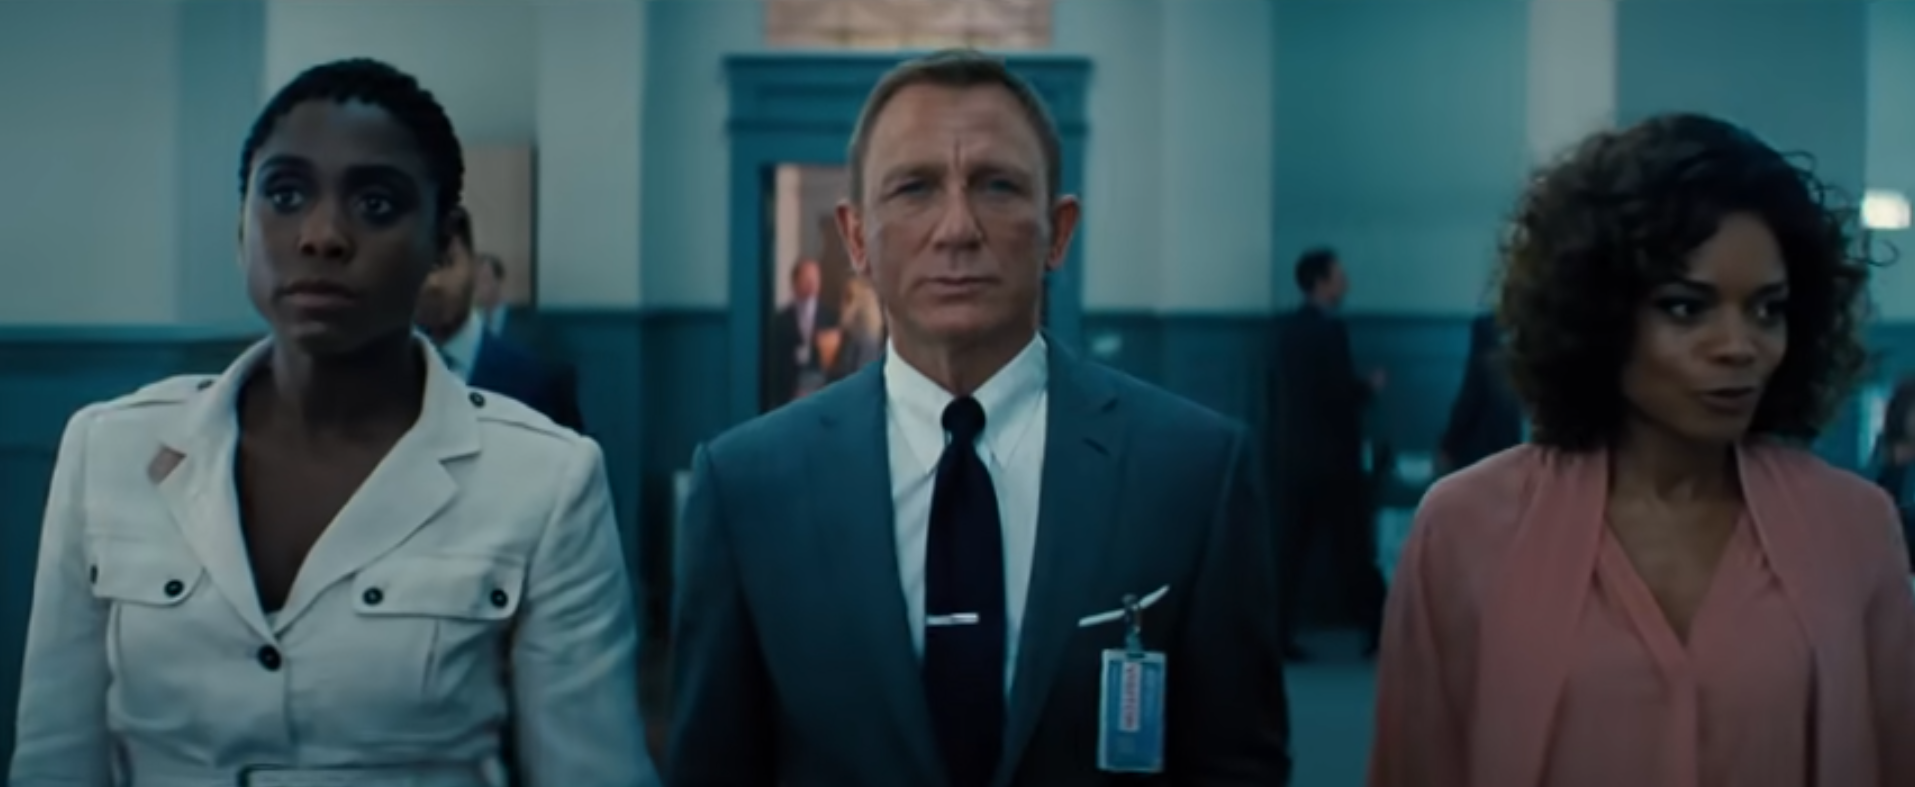 James Bond's Producers Explain Why They'll Never Make Him a Woman